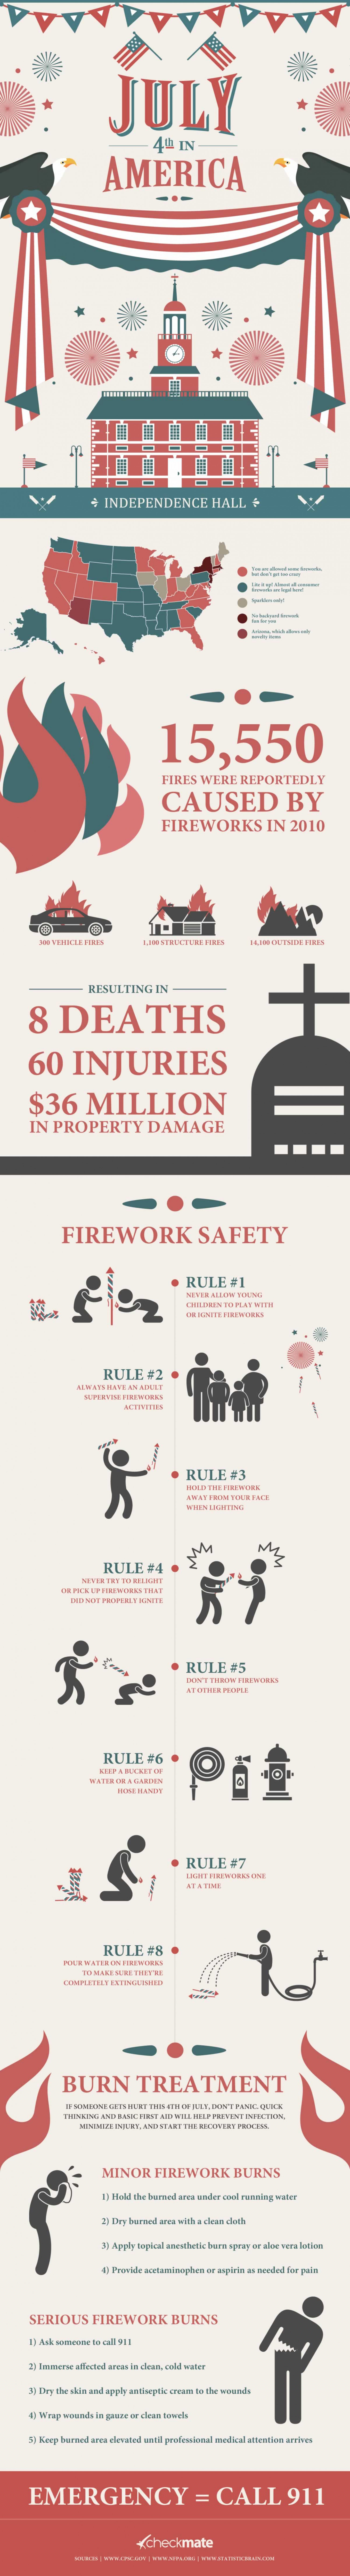 Don't Blow Yourself Up This 4th of July: Fireworks Safety Infographic